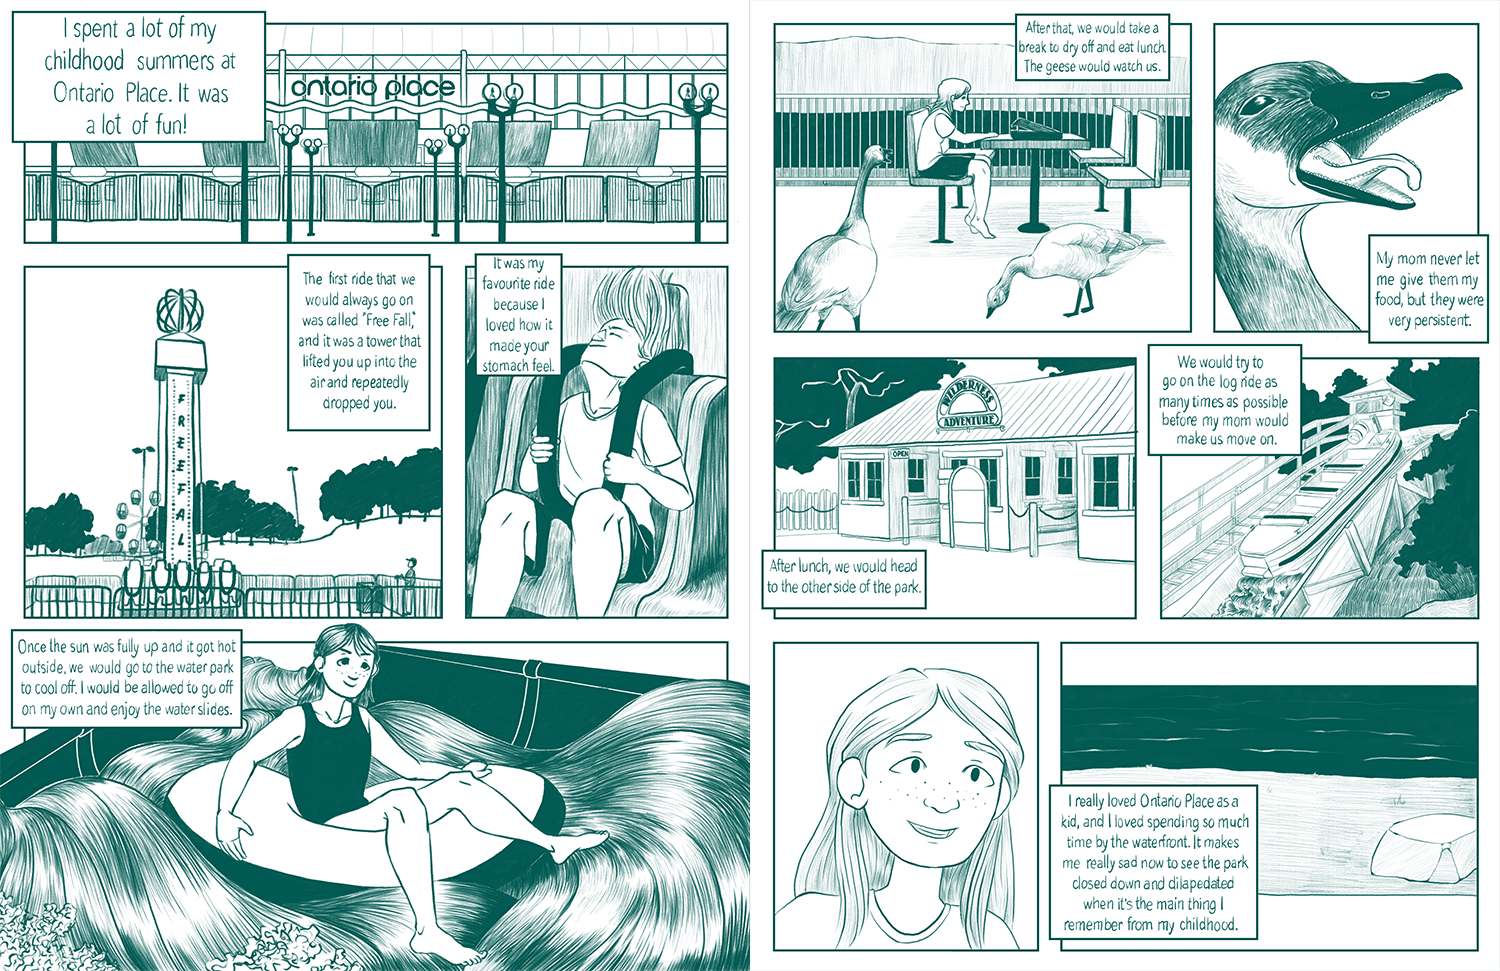 A comic based around my love for Ontario Place, located in Toronto, Ontario.